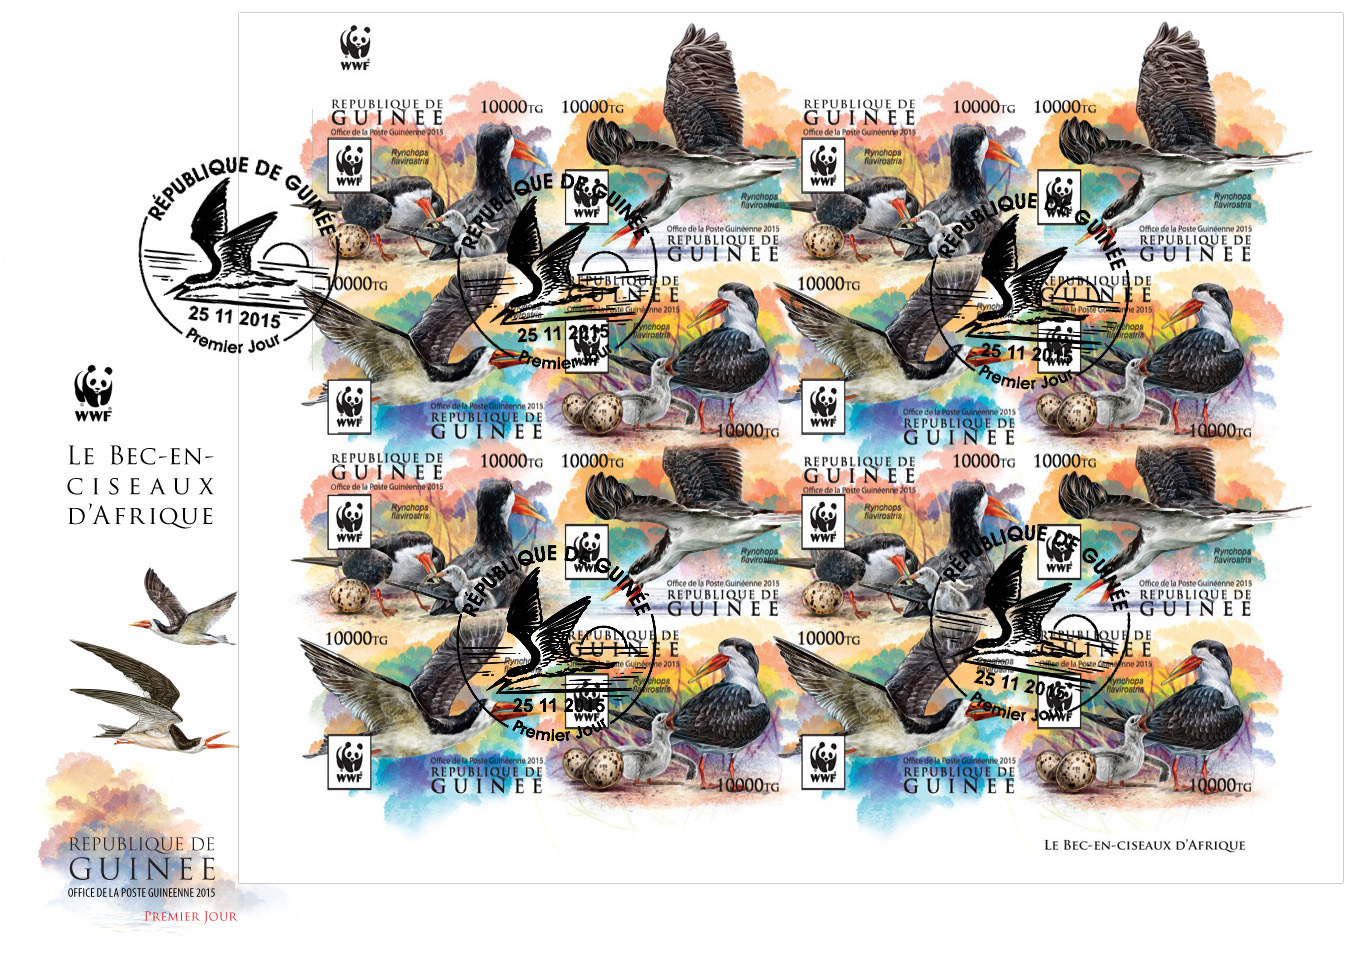 WWF – Skimmer (FDC imperf.) - Issue of Guinée postage stamps